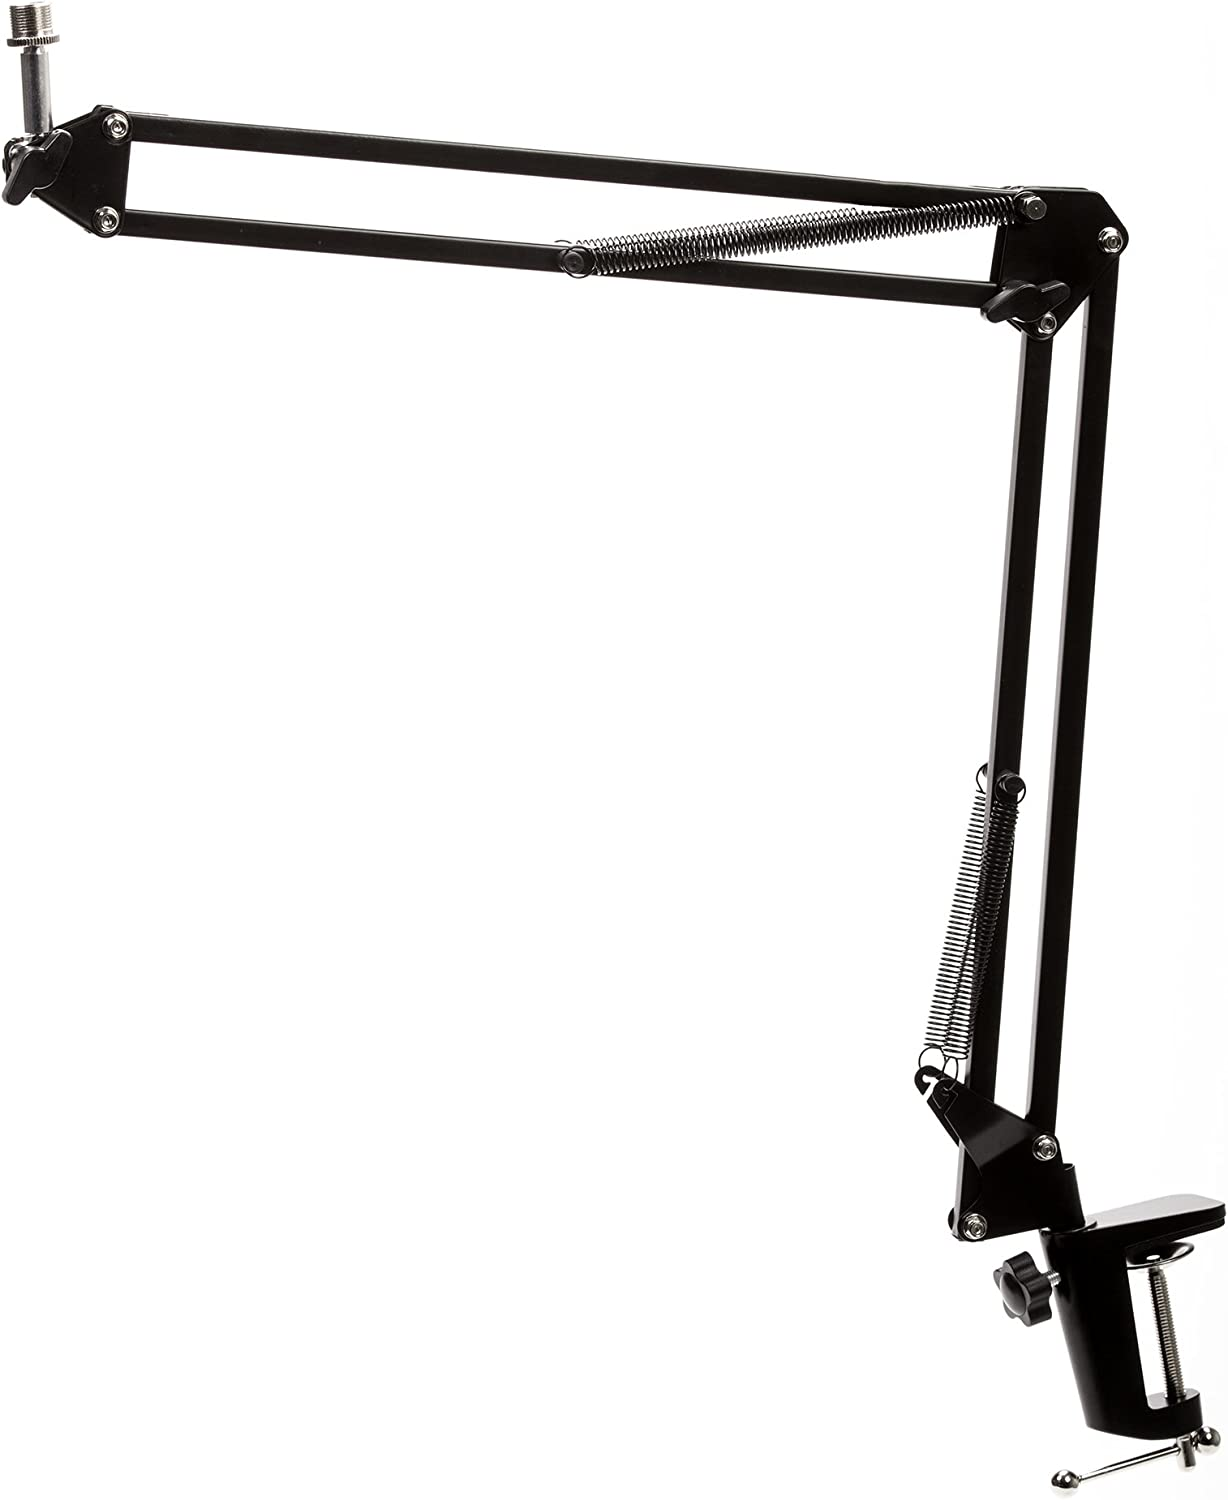 Knox Gear Microphone Desktop Book Arm - Black